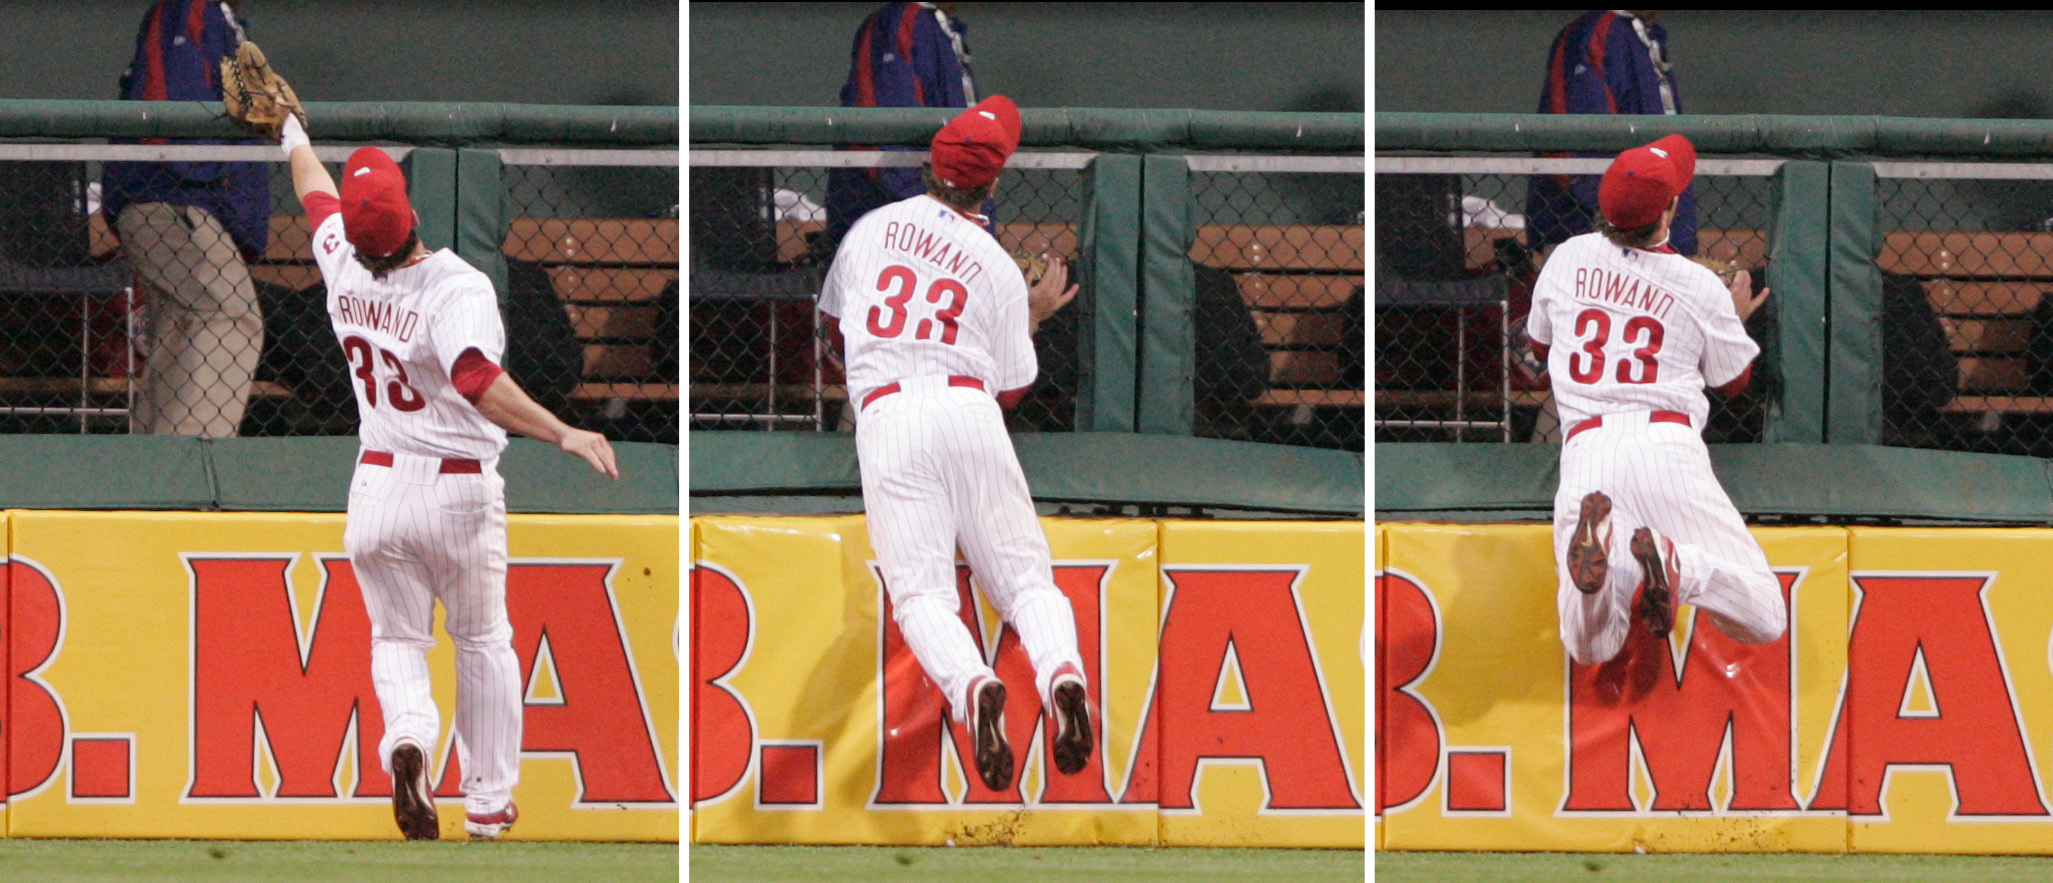 Aaron Rowand made arguably the greatest catch in Citizens Bank Park history in 2006 and was selected for his only All-Star appearance for the club the following season. He broke his nose and several bones in his face making the play off a drive by the Mets Xavier Nady.